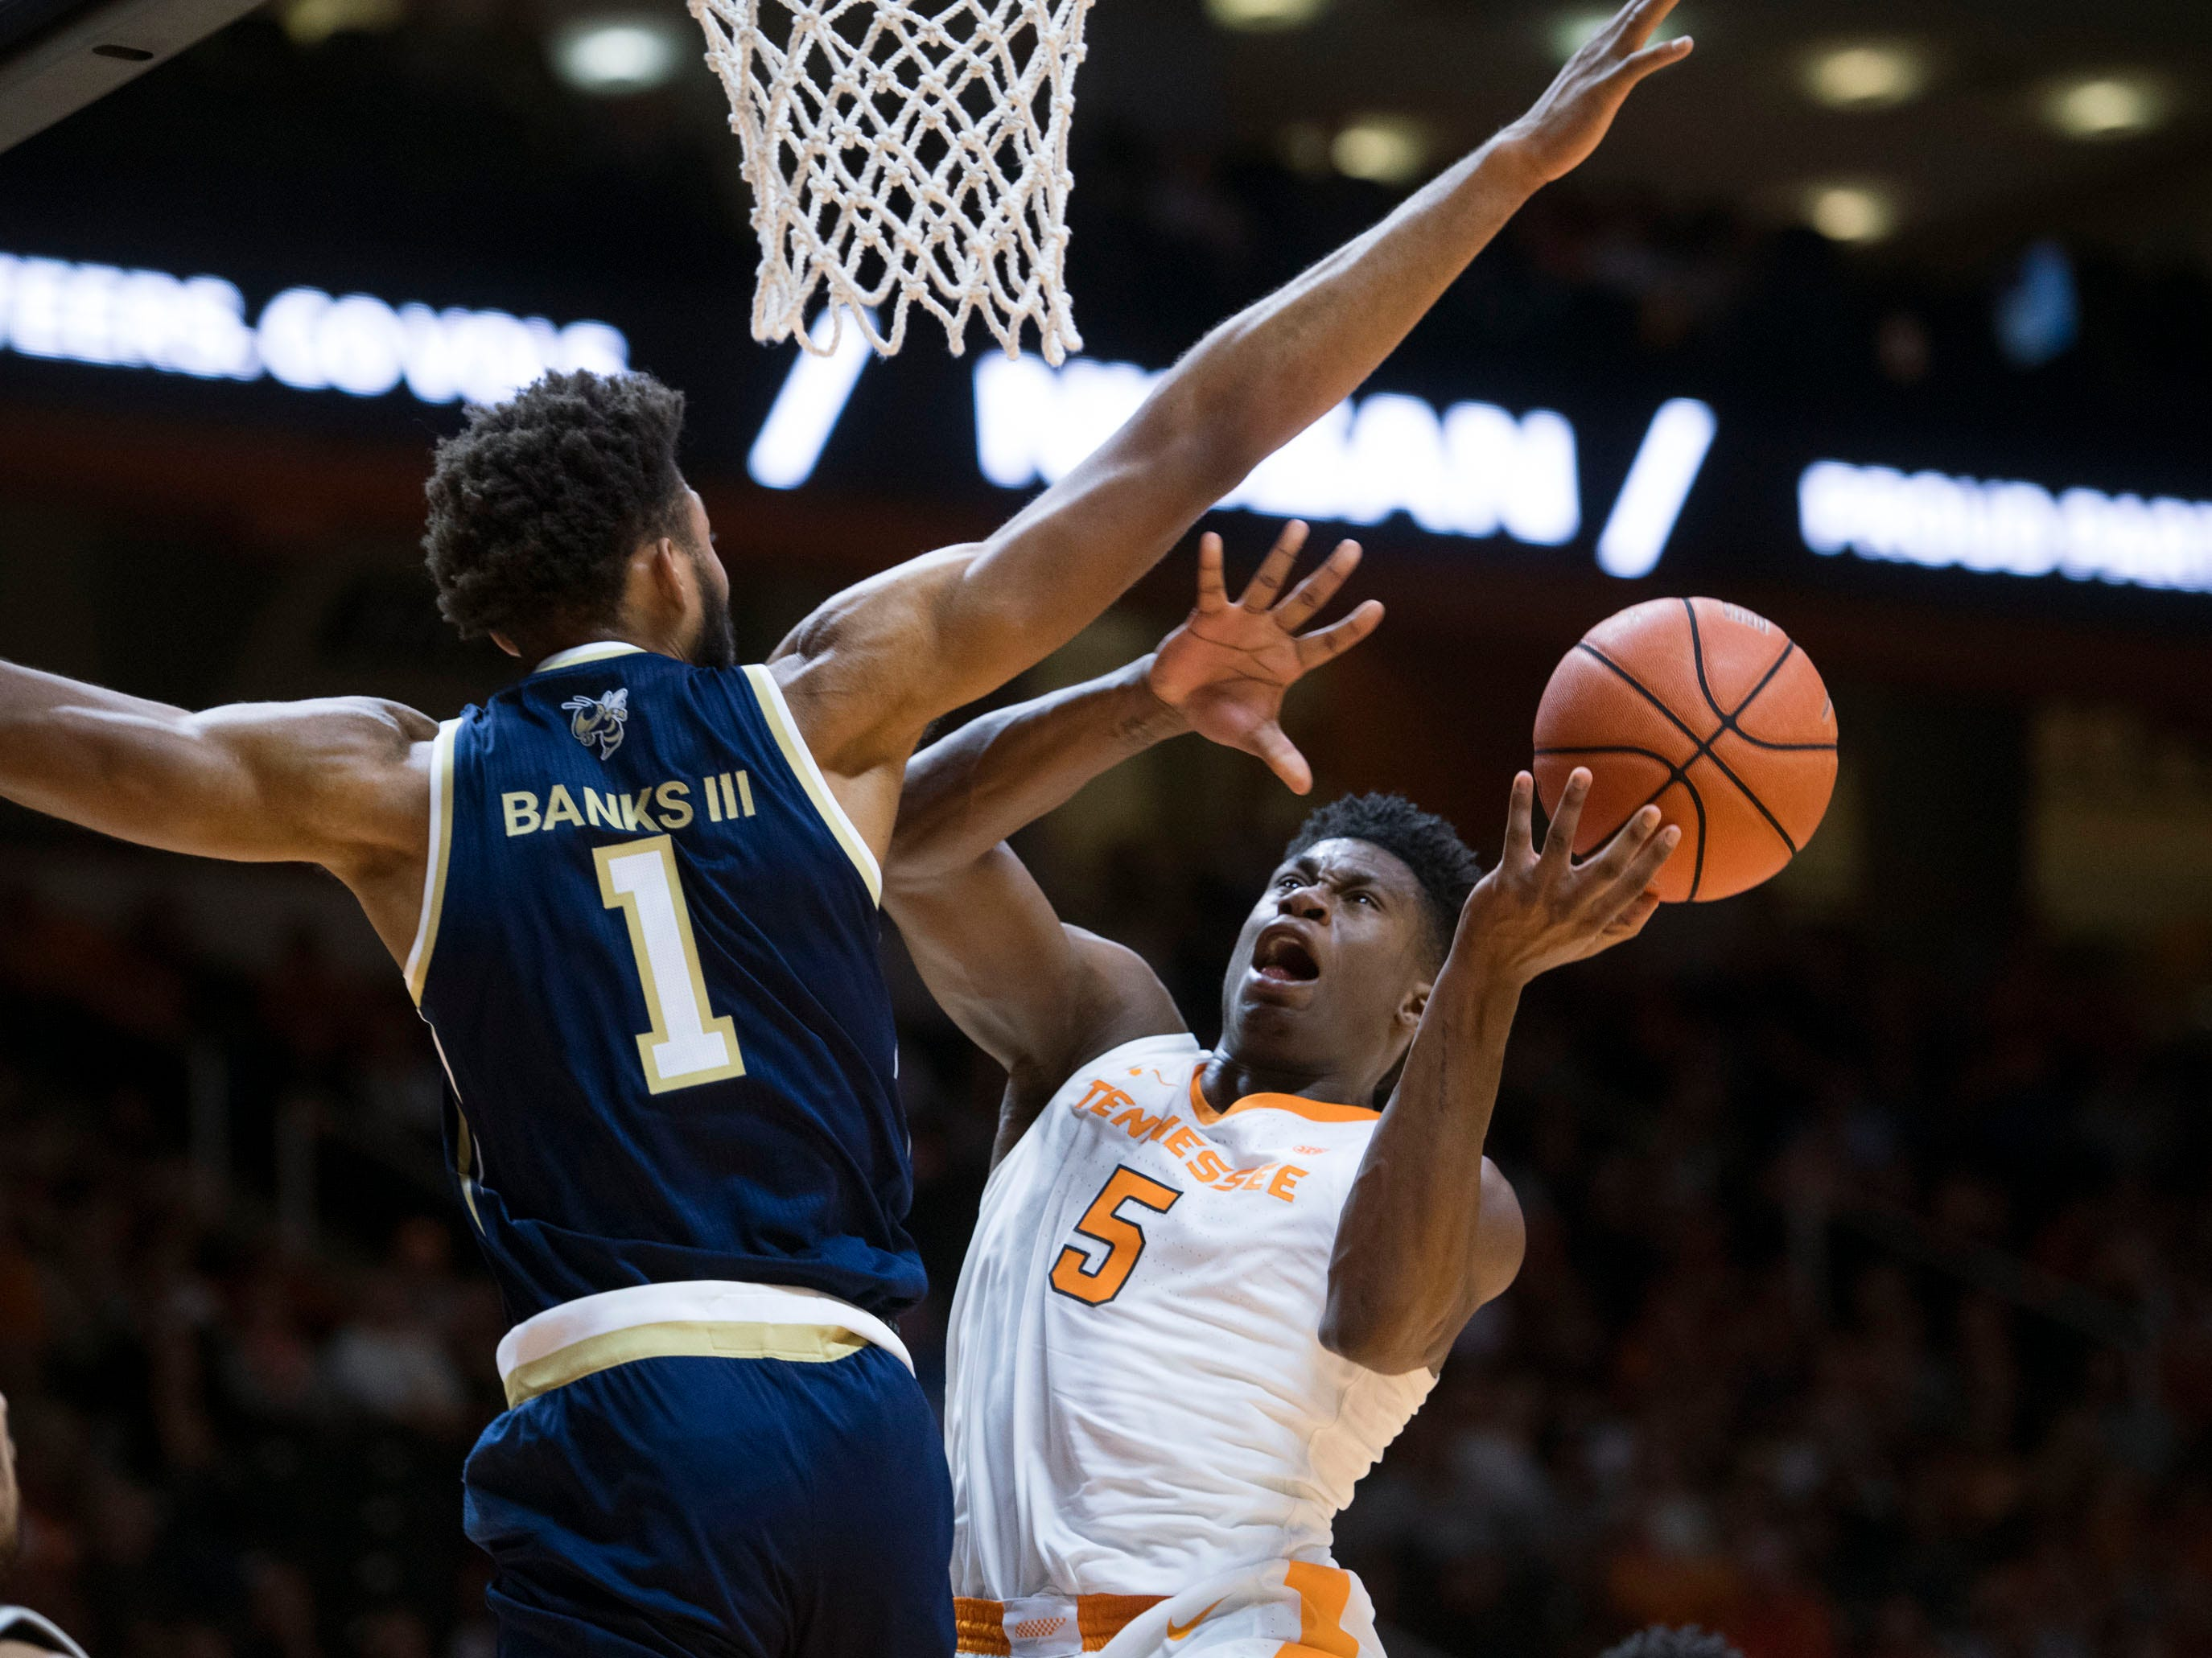 Tennessee's Admiral Schofield (5) attempts to score while defended by Georgia Tech's James Banks III (1) at Thompson-Boling Arena on Tuesday, November 13, 2018.